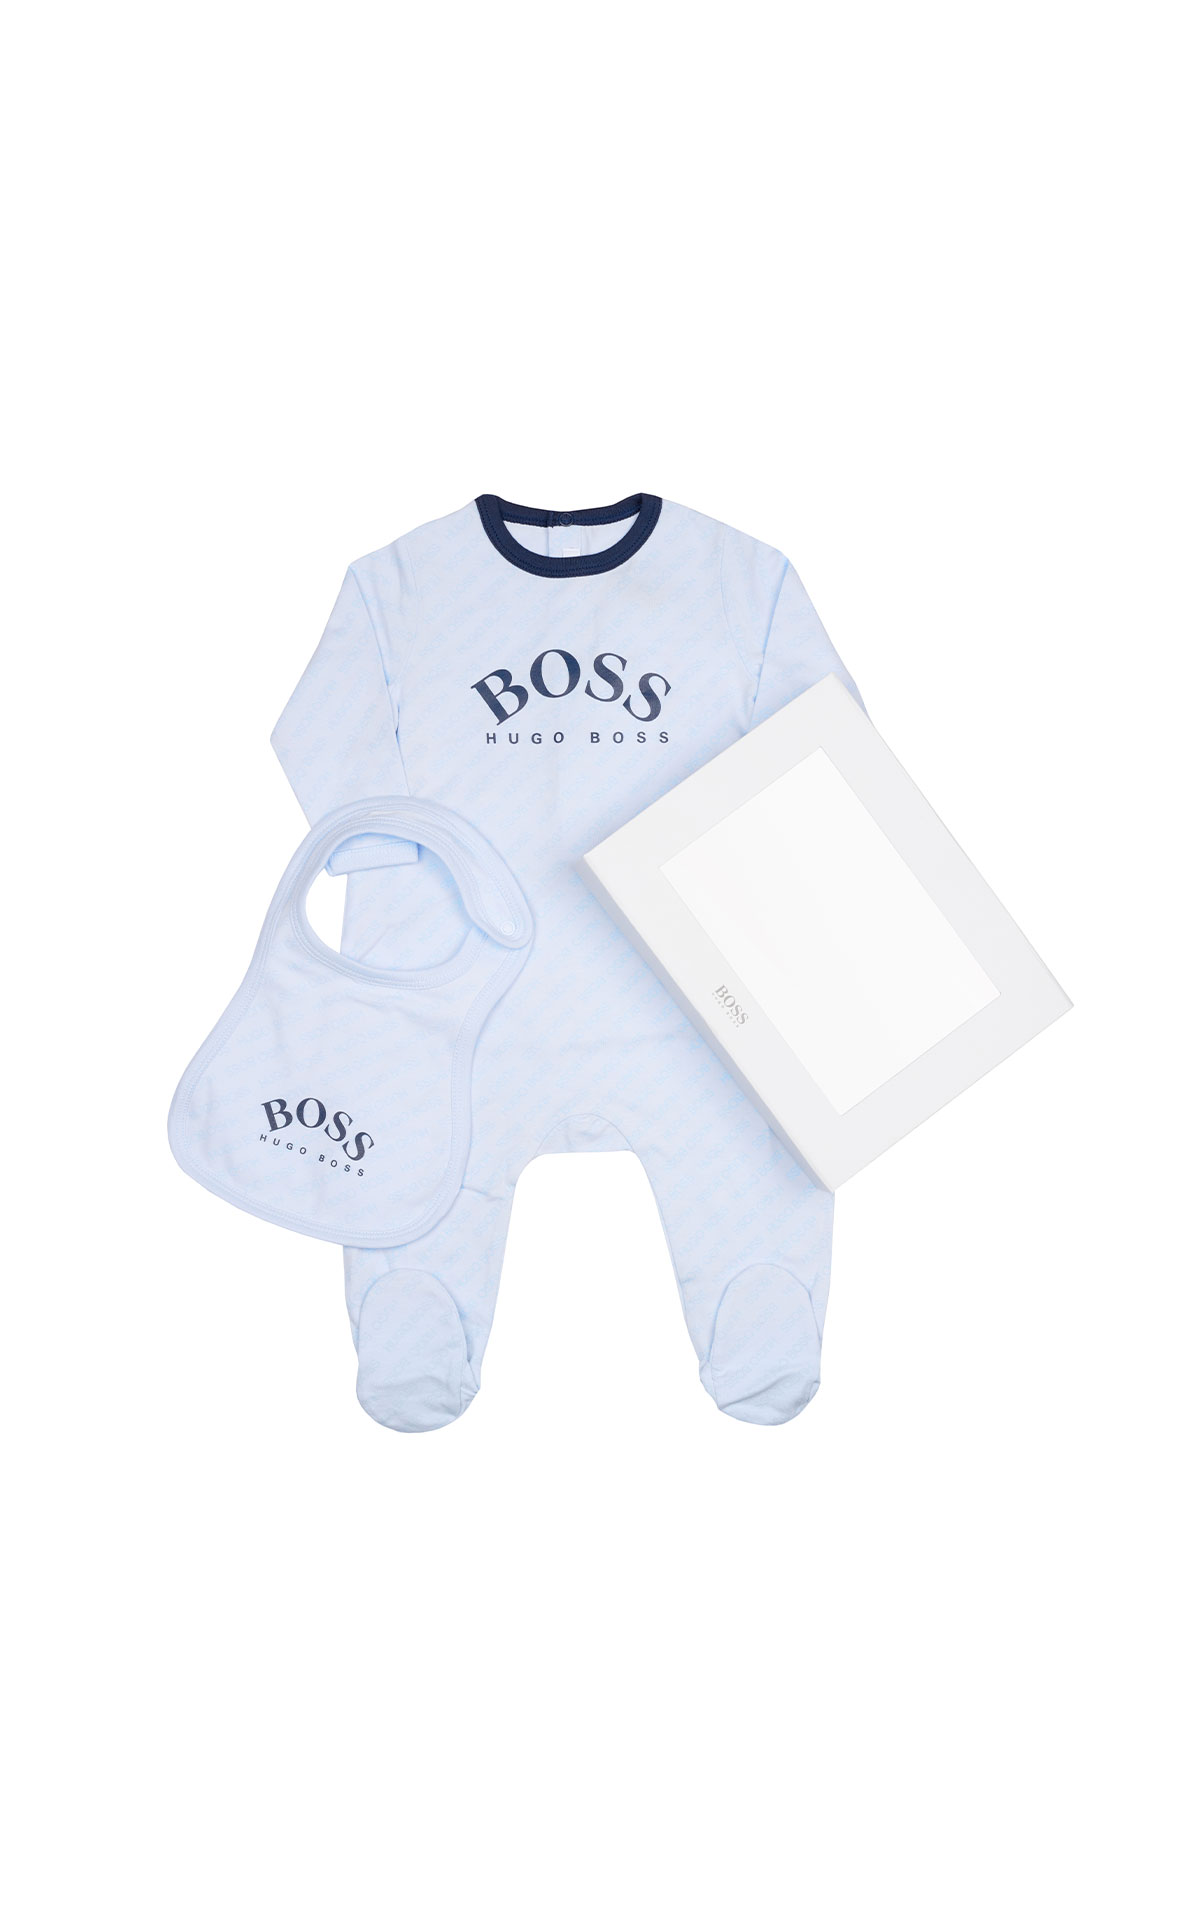 BOSS Kids 6 month boy night set from Bicester Village